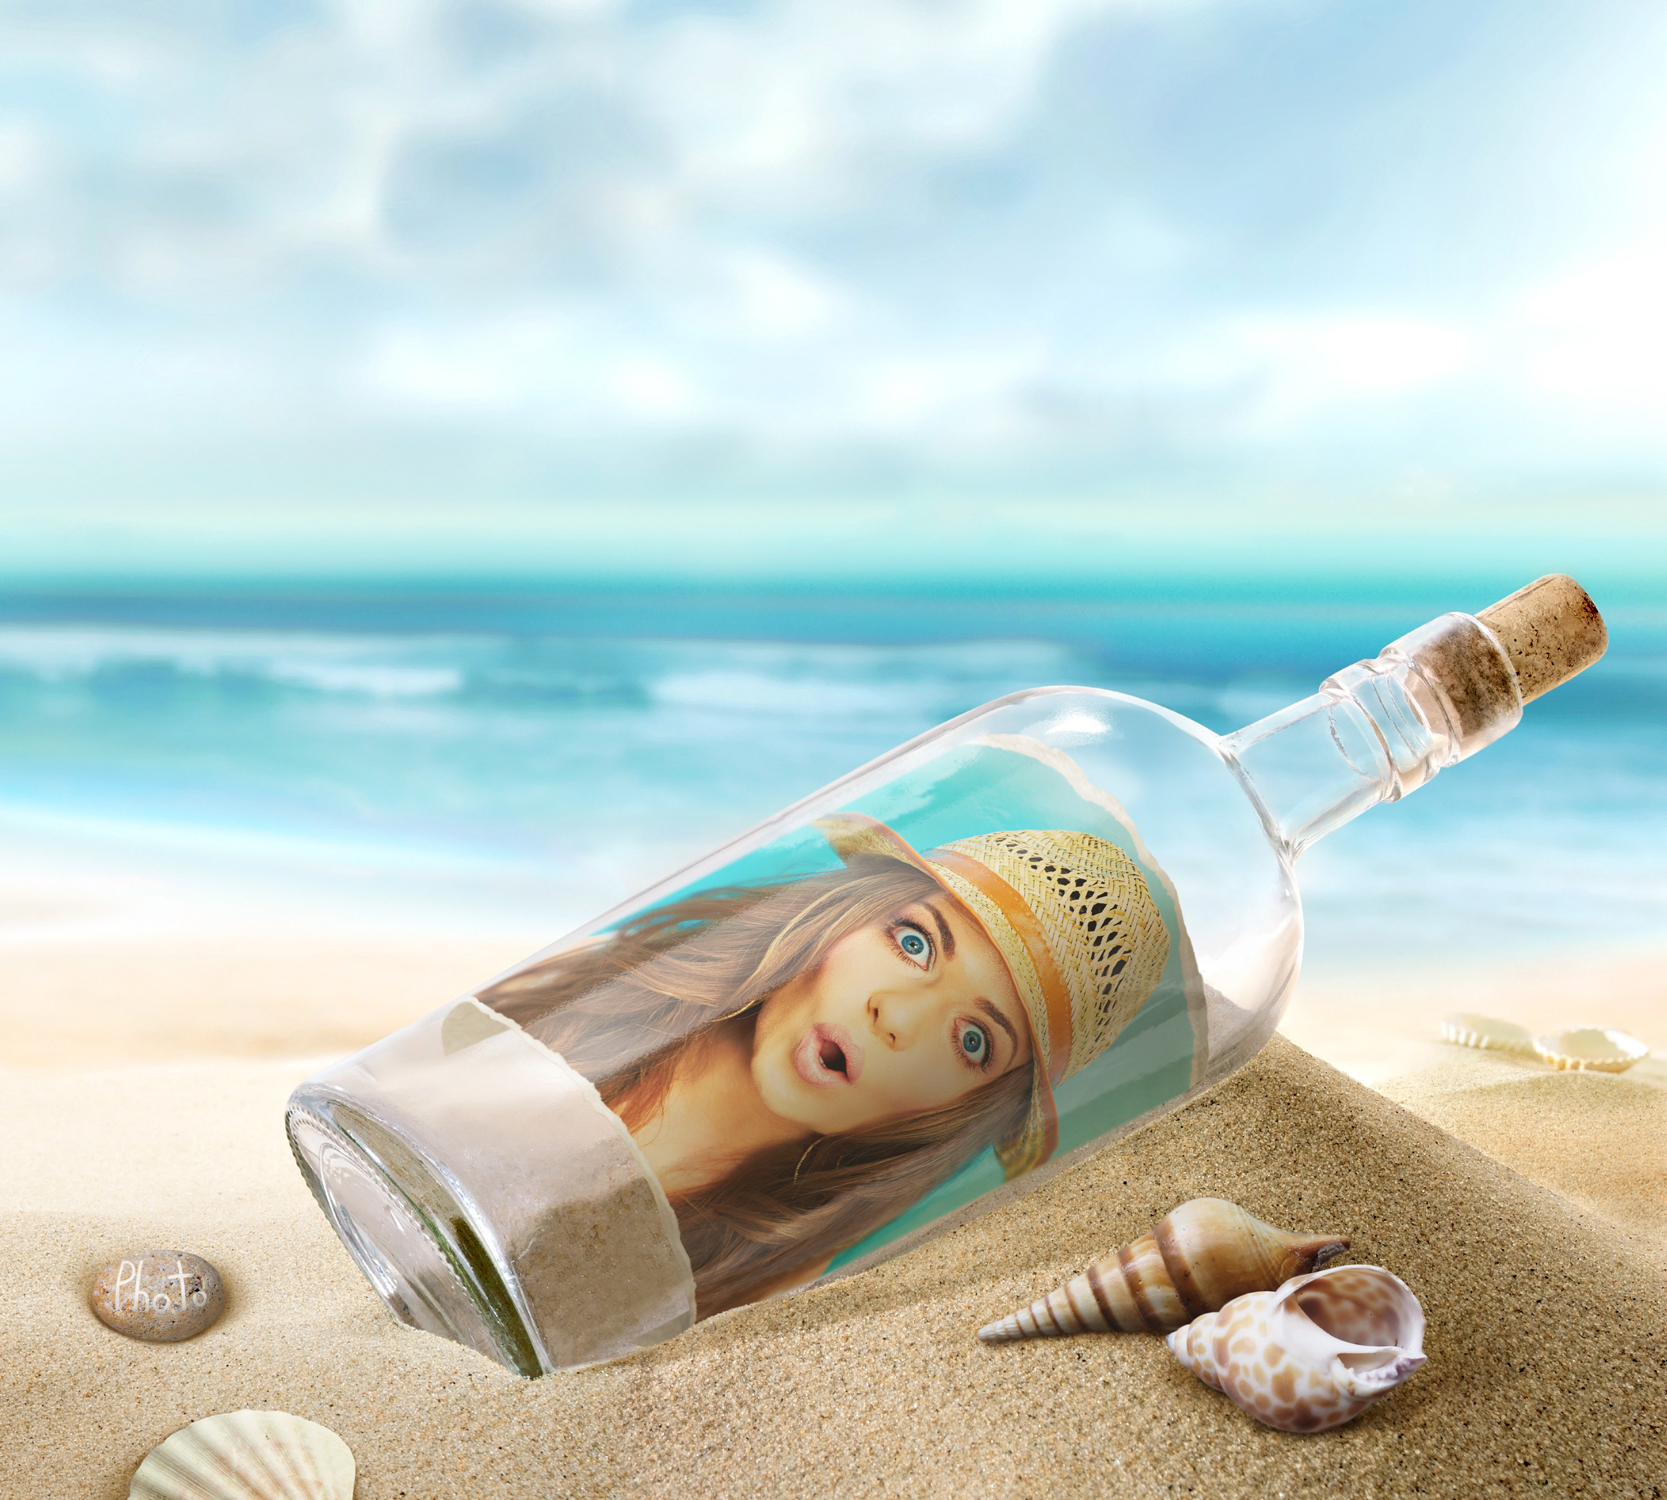 Wonder how to make your message in a bottle? Search no more!